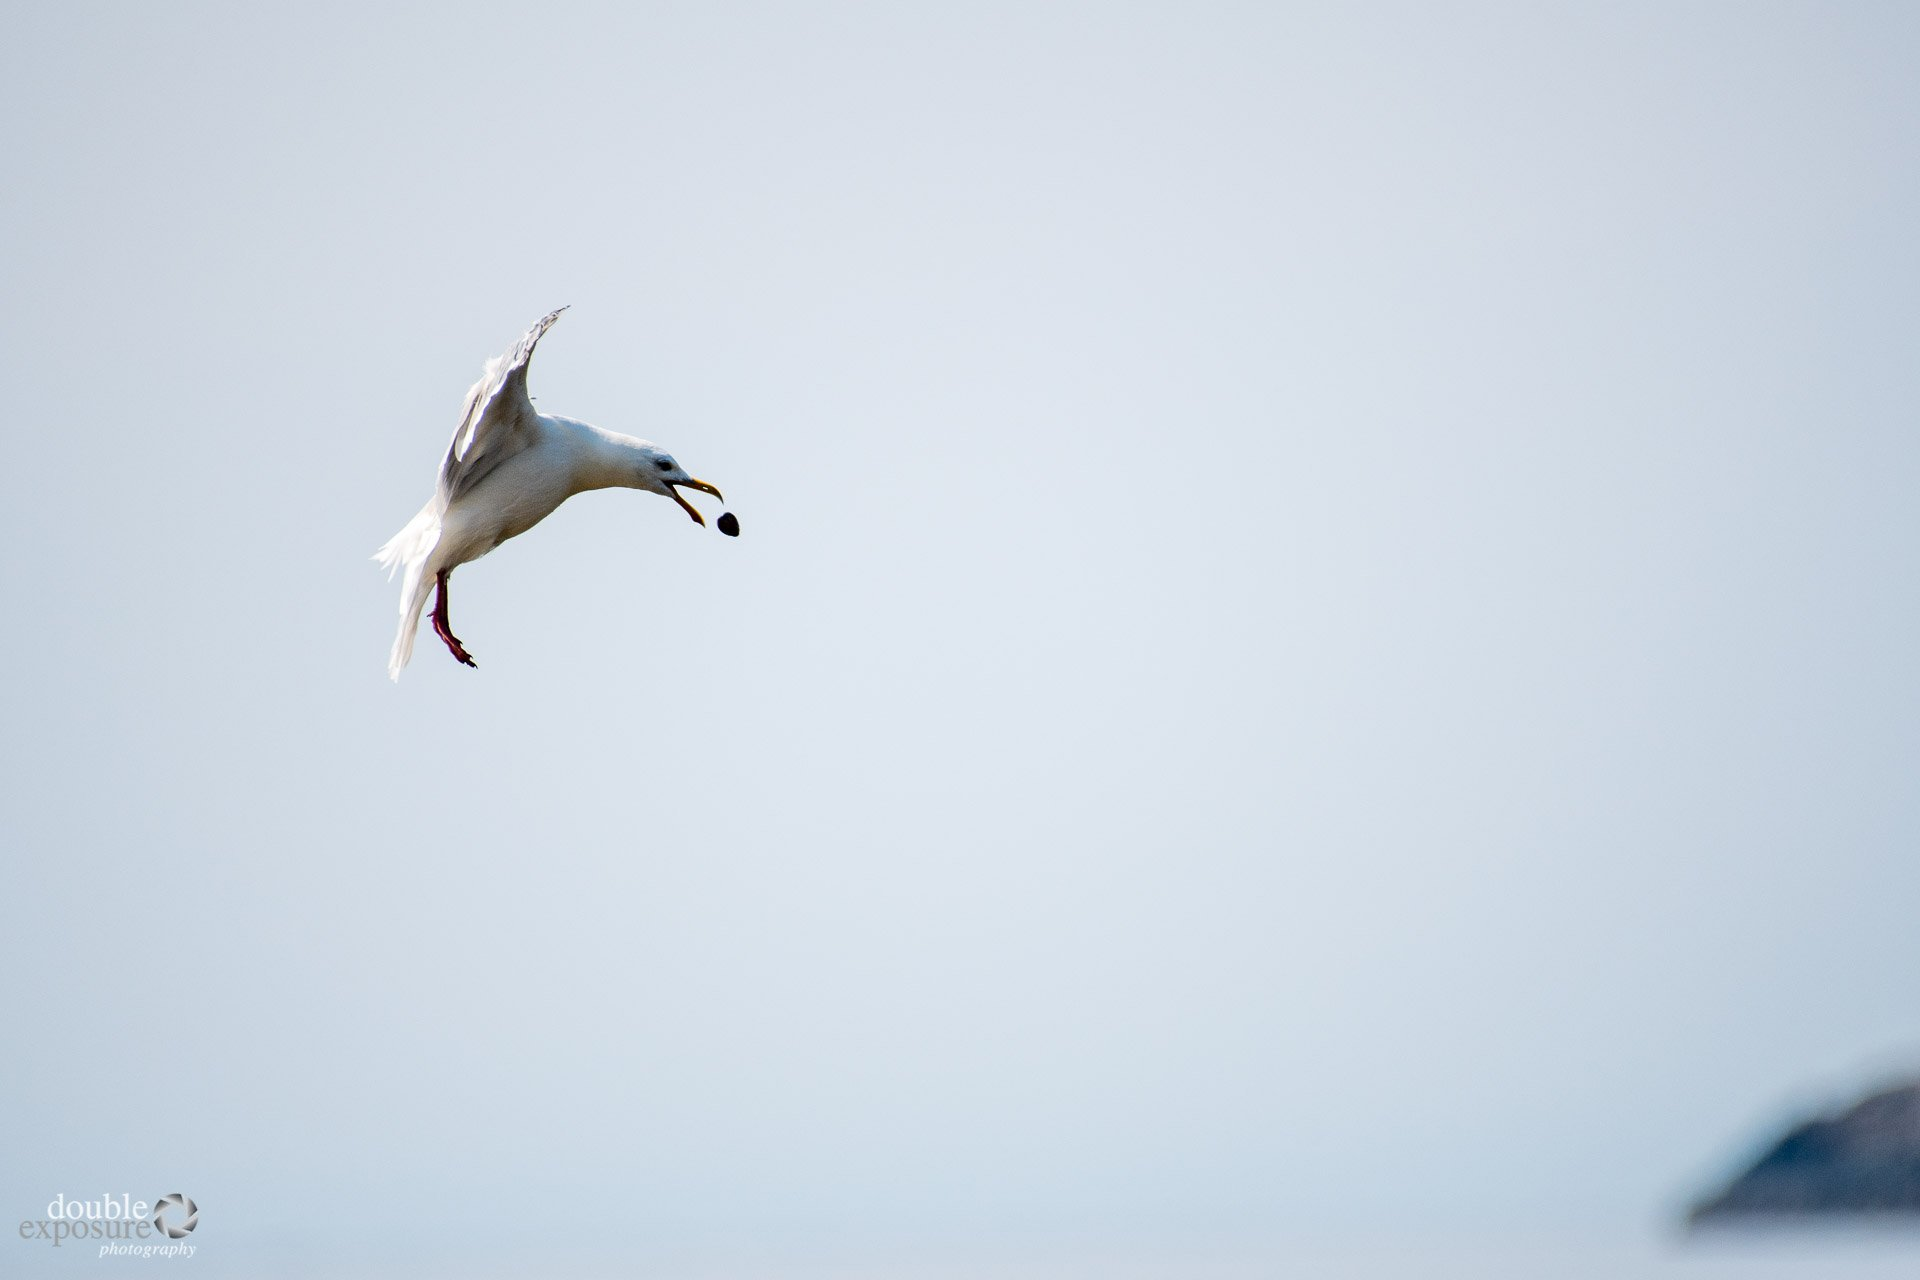 Seagull dropping a clam to crack the shell.